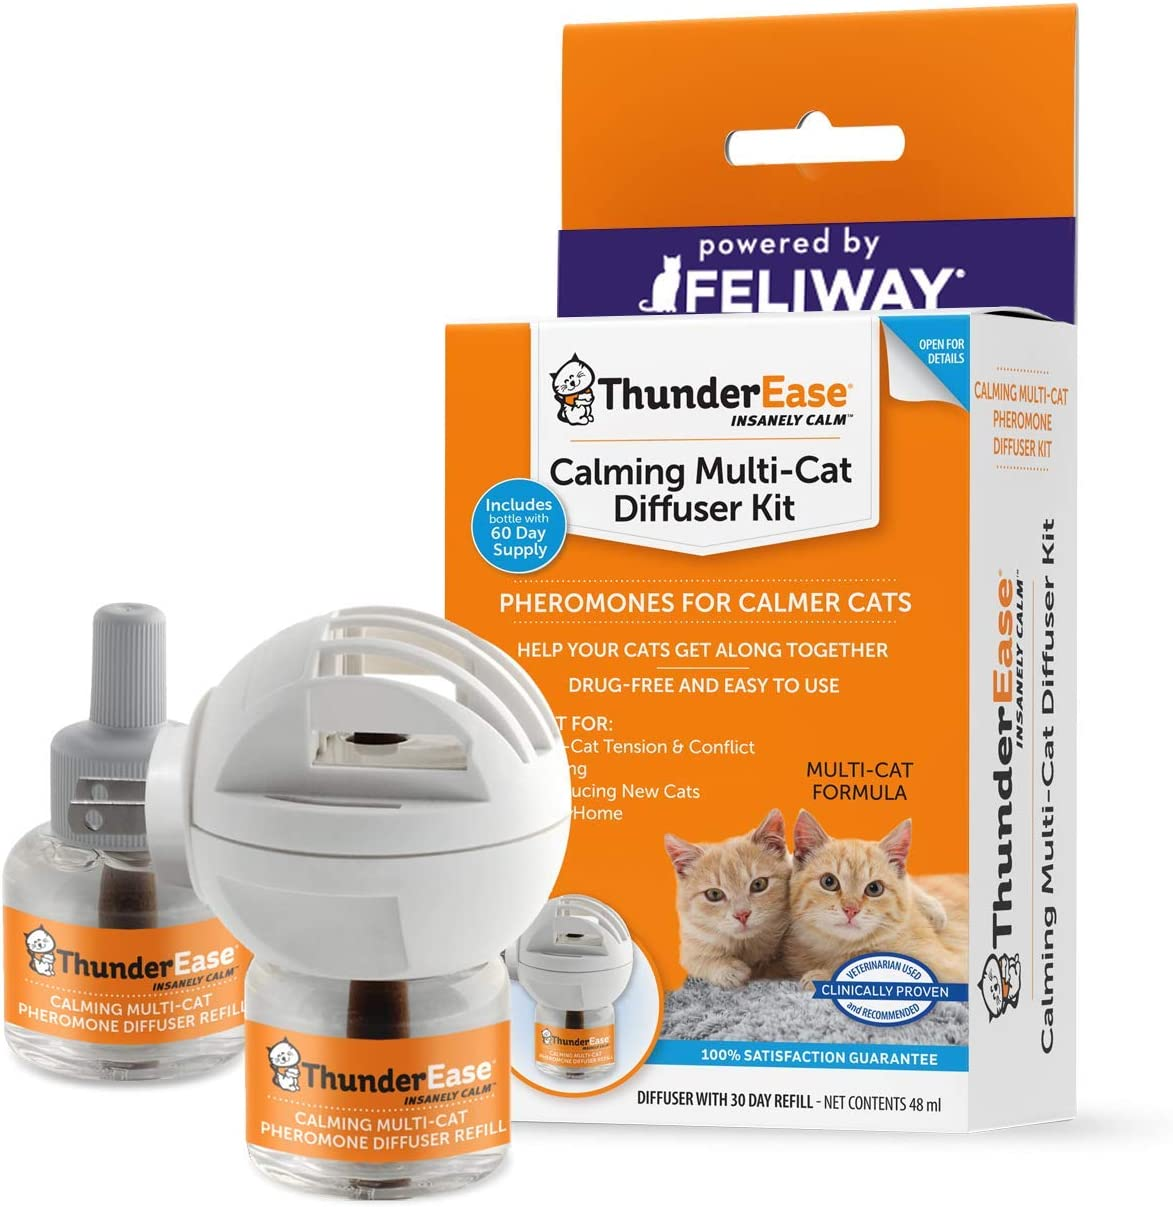 ThunderEase Multicat Calming Pheromone Diffuser Kit   Powered by FELIWAY   Reduce Cat Conflict, Tension and Fighting